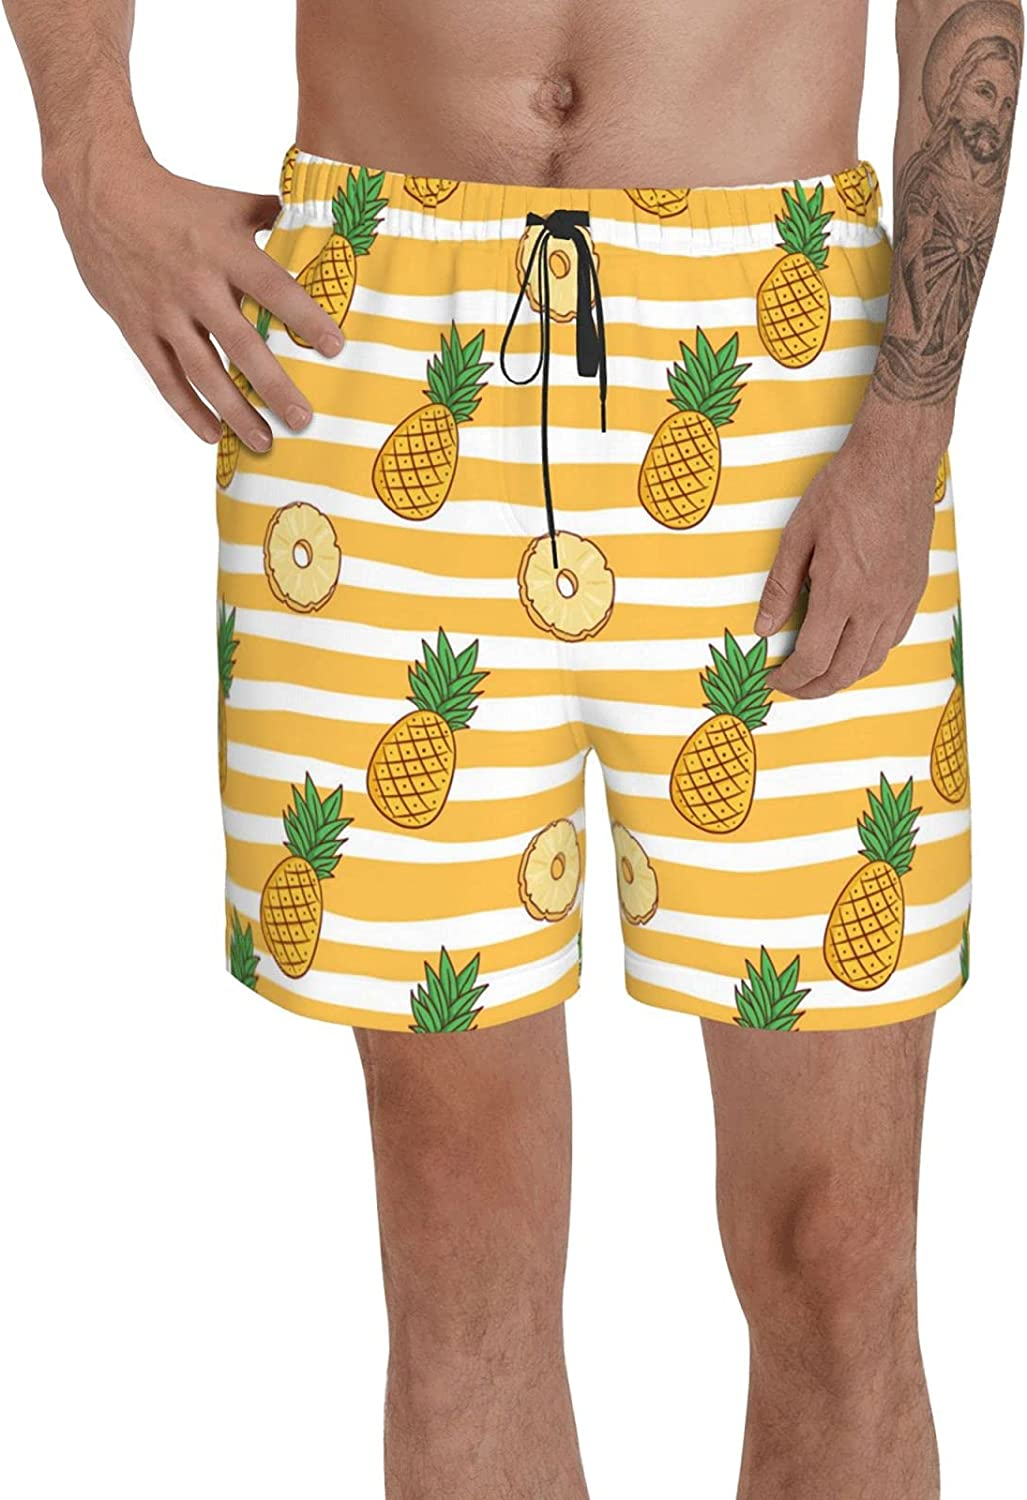 PNNUO Mens Cute Colored Pineapple Swim Trunks Beach Surf Board Shorts Quick Dry Mesh Lining